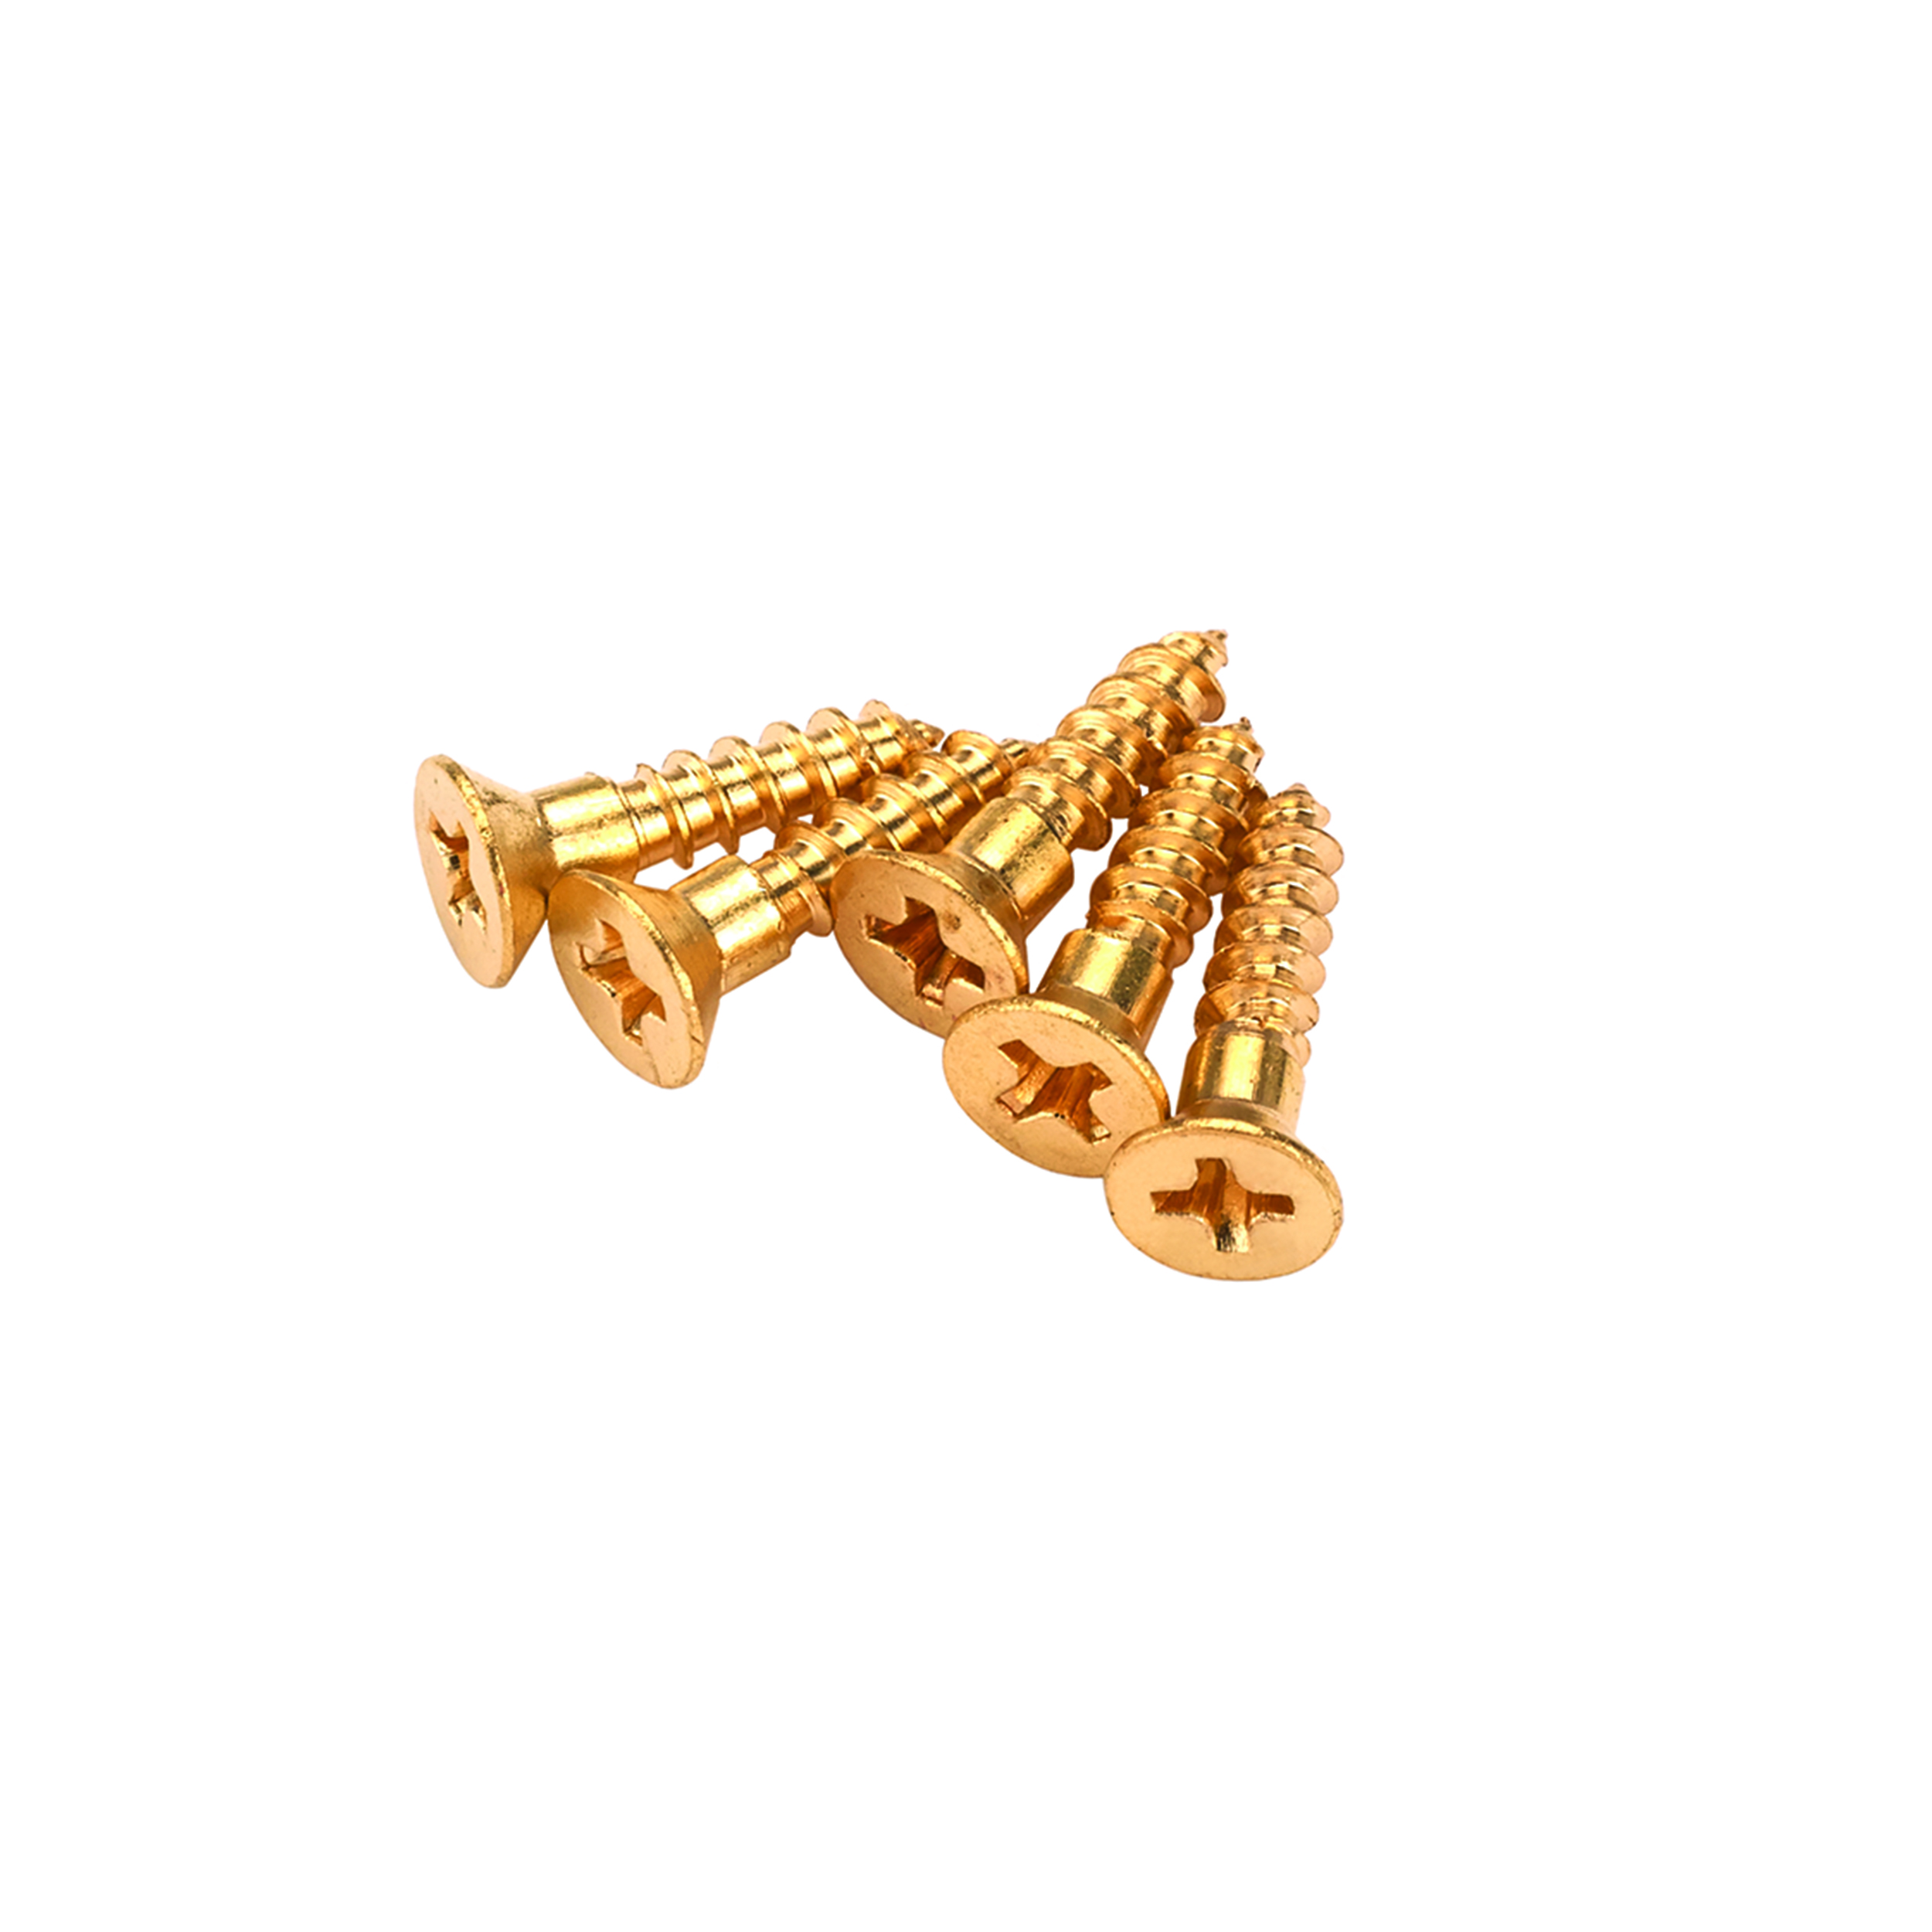 Solid Brass Screws #1 x 1/2